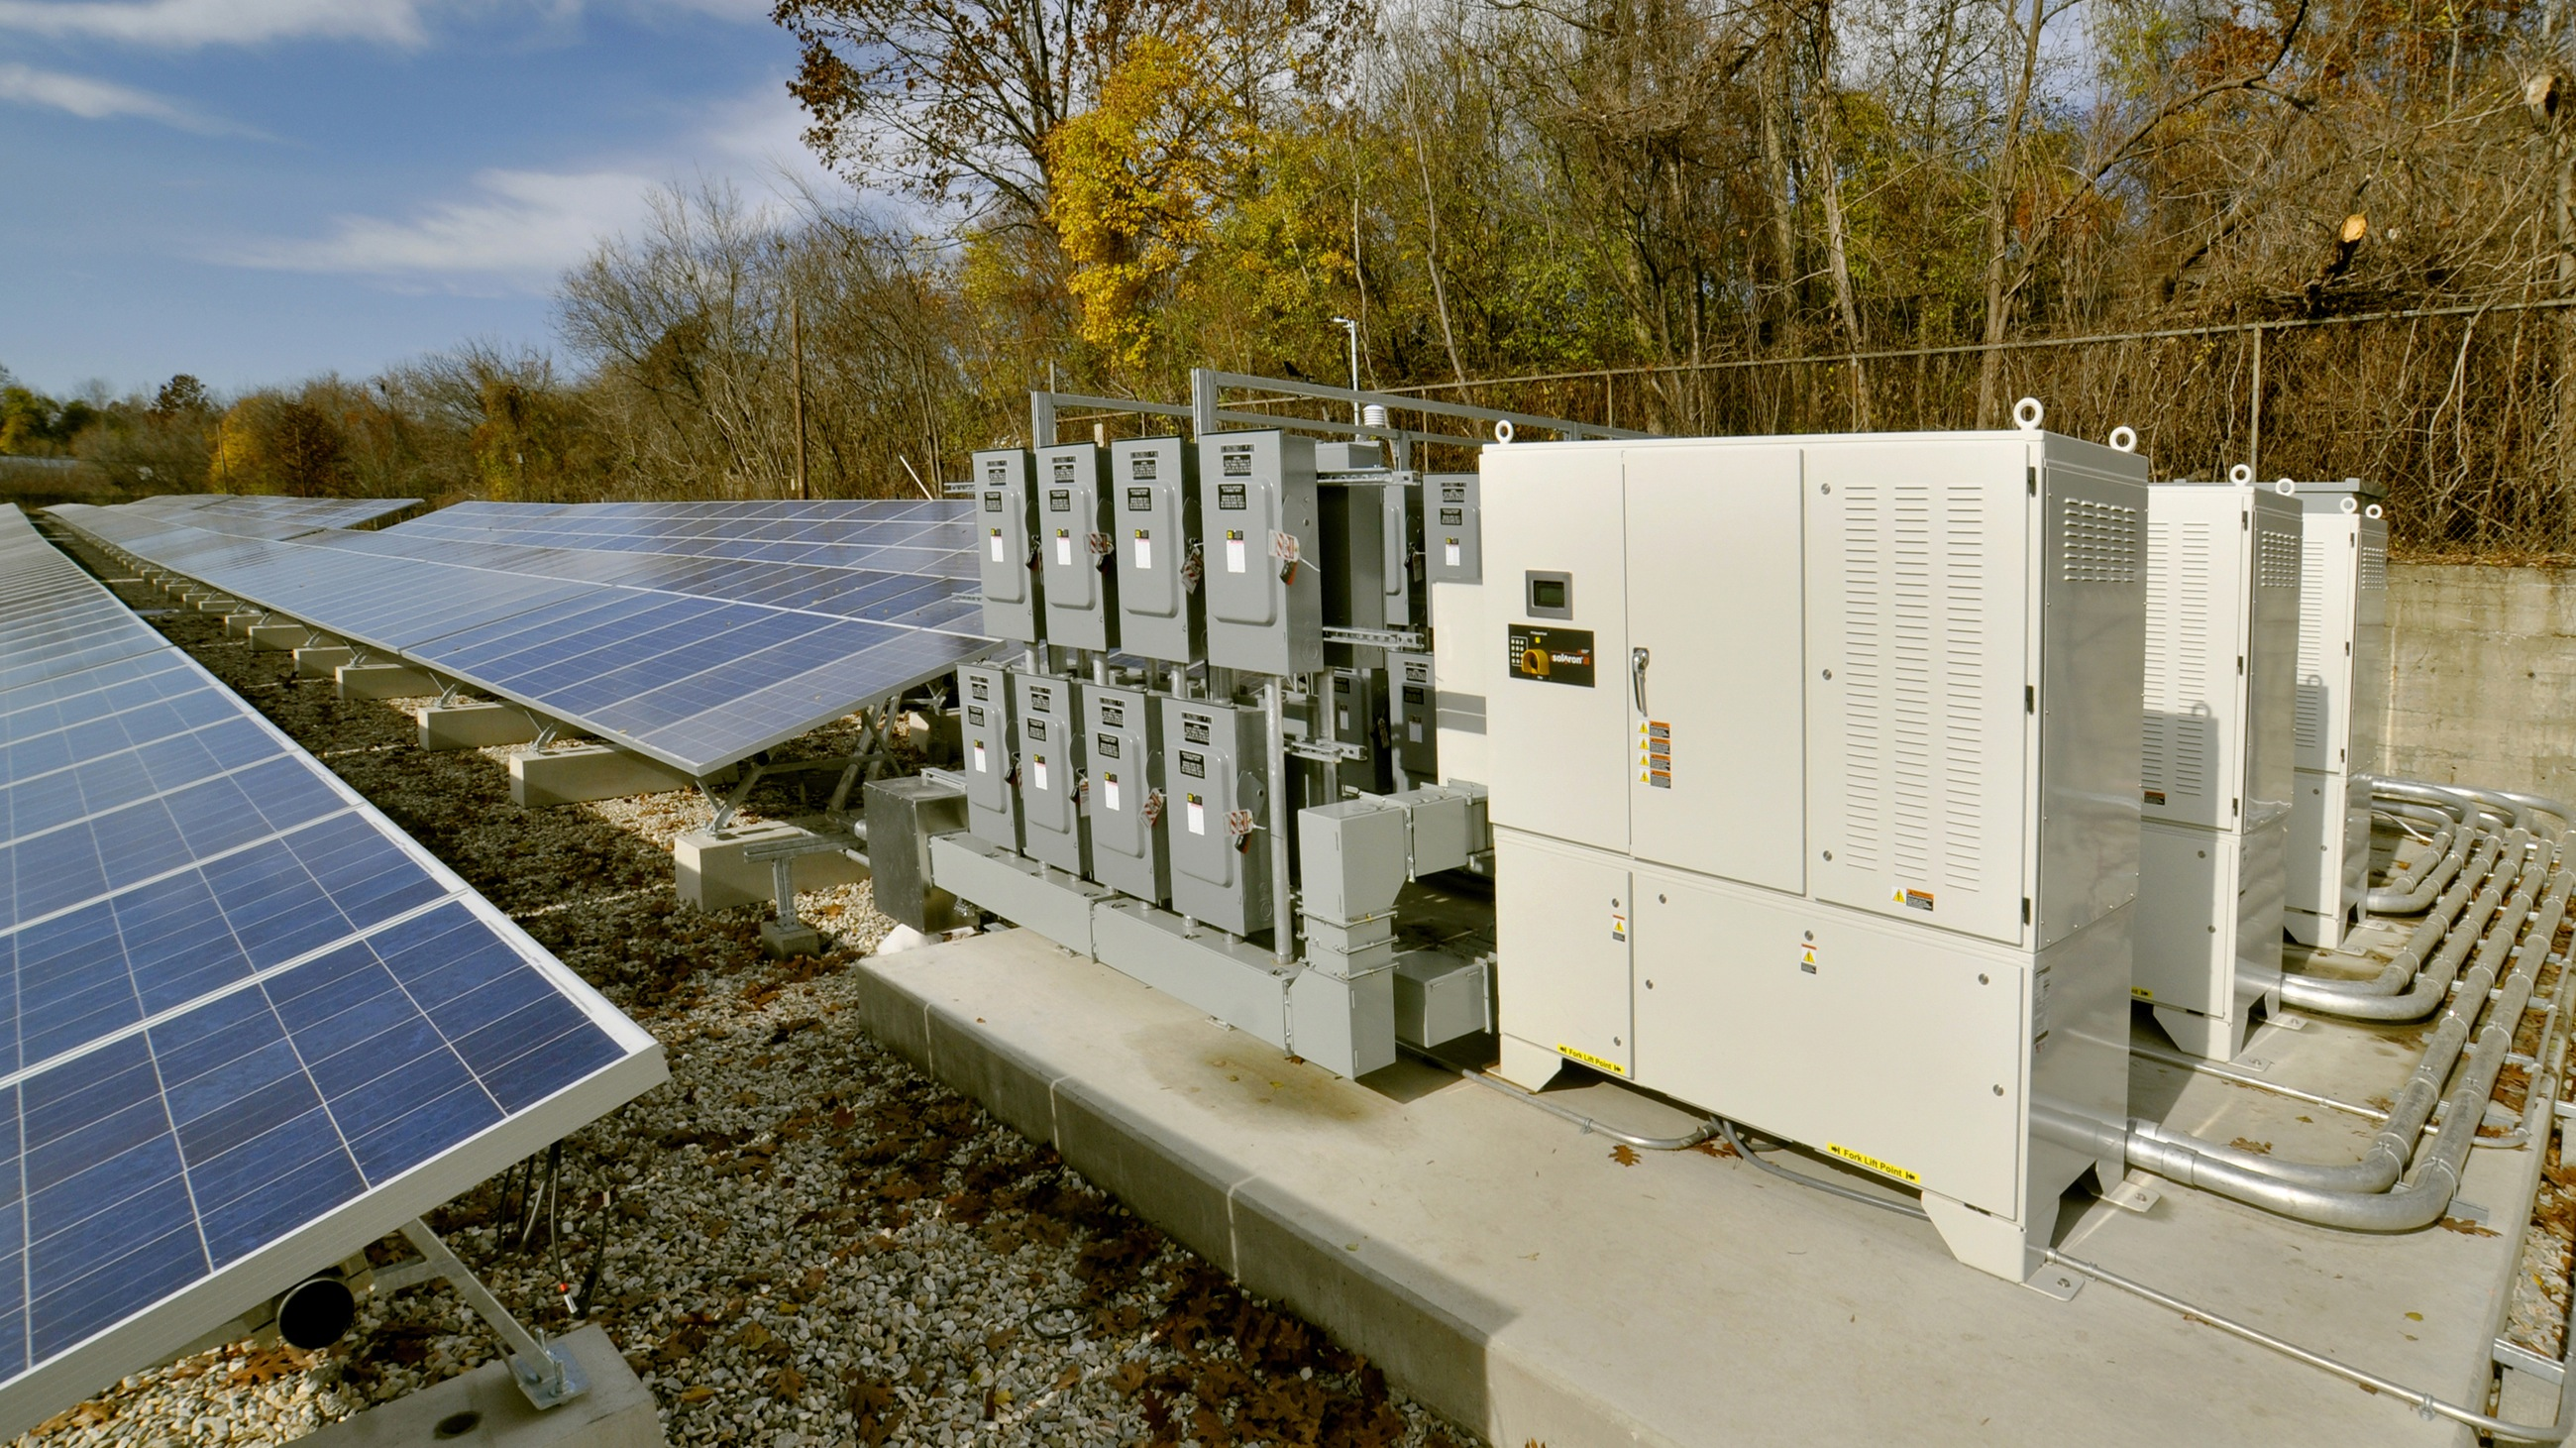 HOLD FOR STORY BY STEVEN SINGER MOVING WEEKEND OF NOV. 13-14 Inverters, pictured right, convert direct current (dc), which is gathered by solar panels, pictured left, into alternating current (ac), so that is can be used by consumers. The largest solar energy plant in New England is this 1.8 megawatt facility in Pittsfield, Massachusetts, run by the Western Massachusetts Electric Company Wednesday, November 10, 2010. (AP Photo/Stewart Cairns)